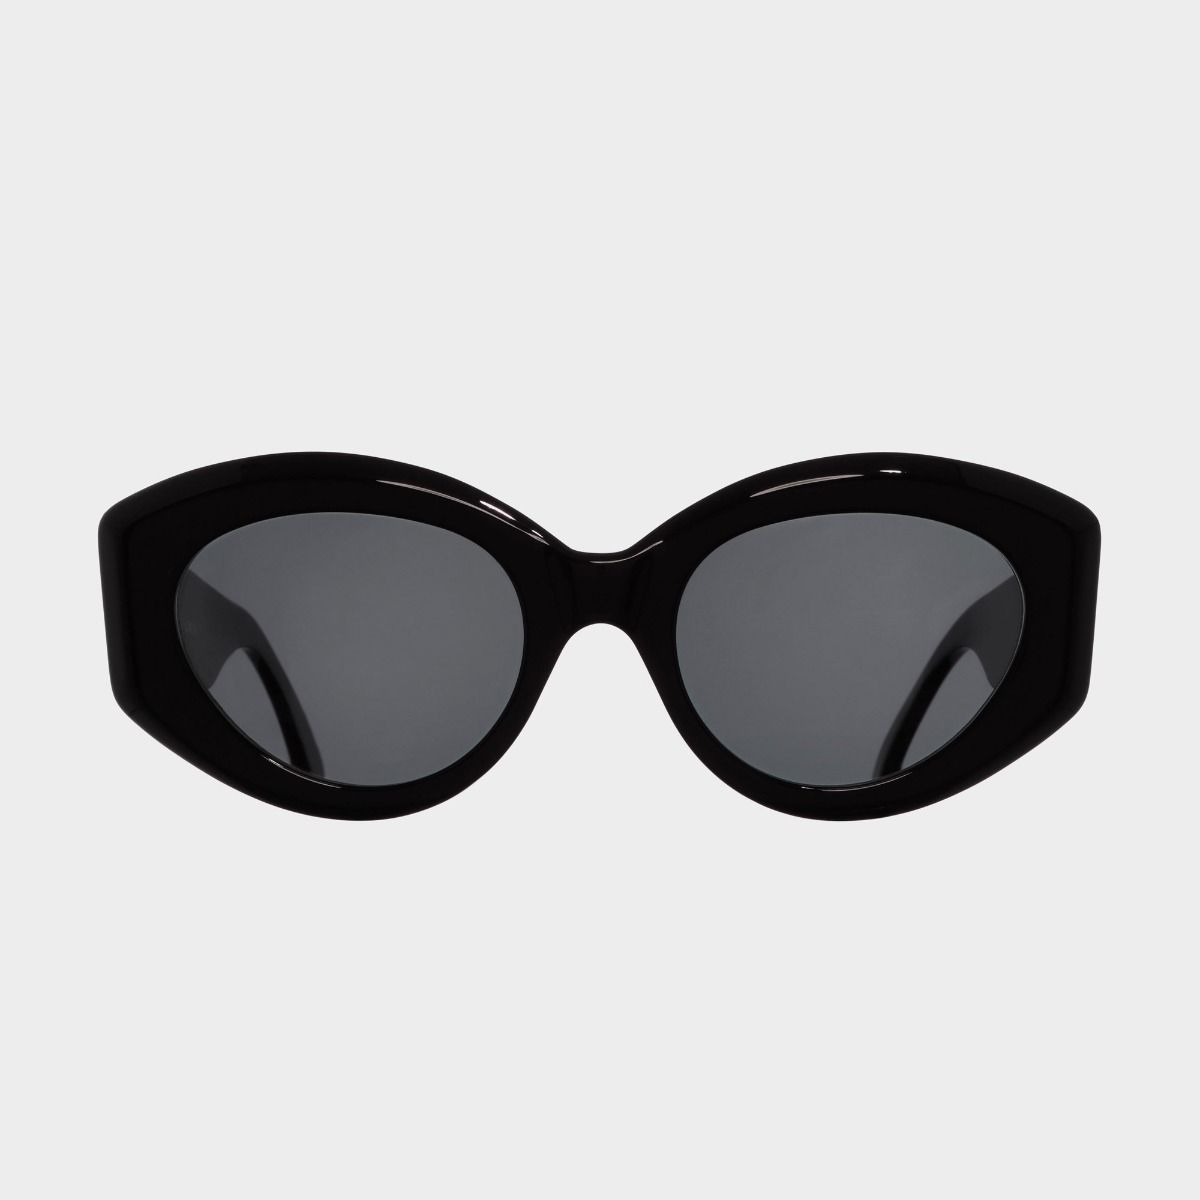 0317 Cat-Eye Sunglasses